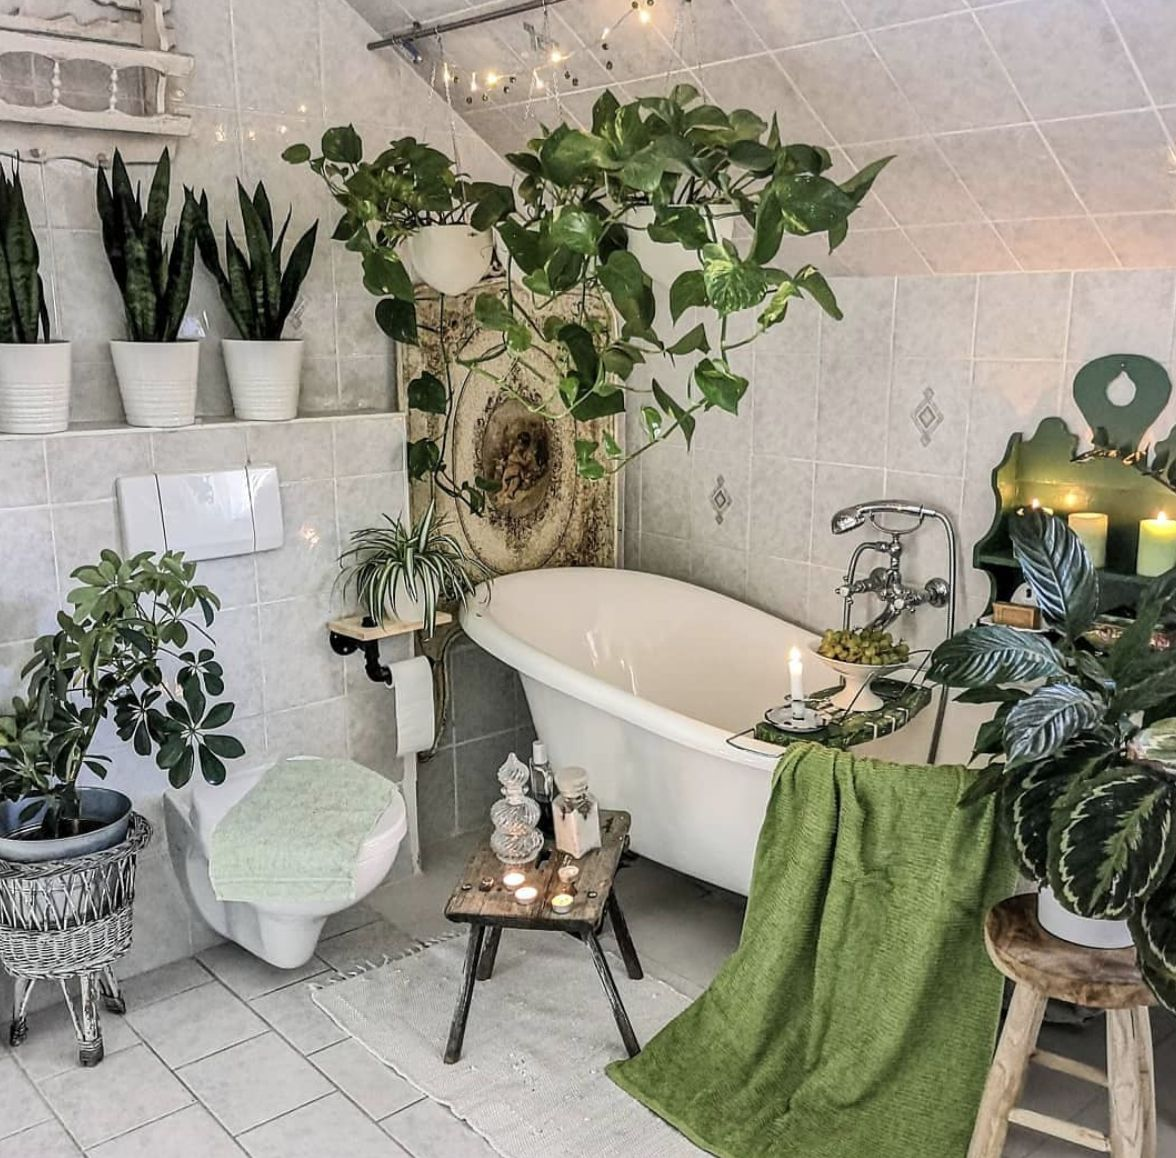 17 Bathroom Plants That Were Styled Perfectly